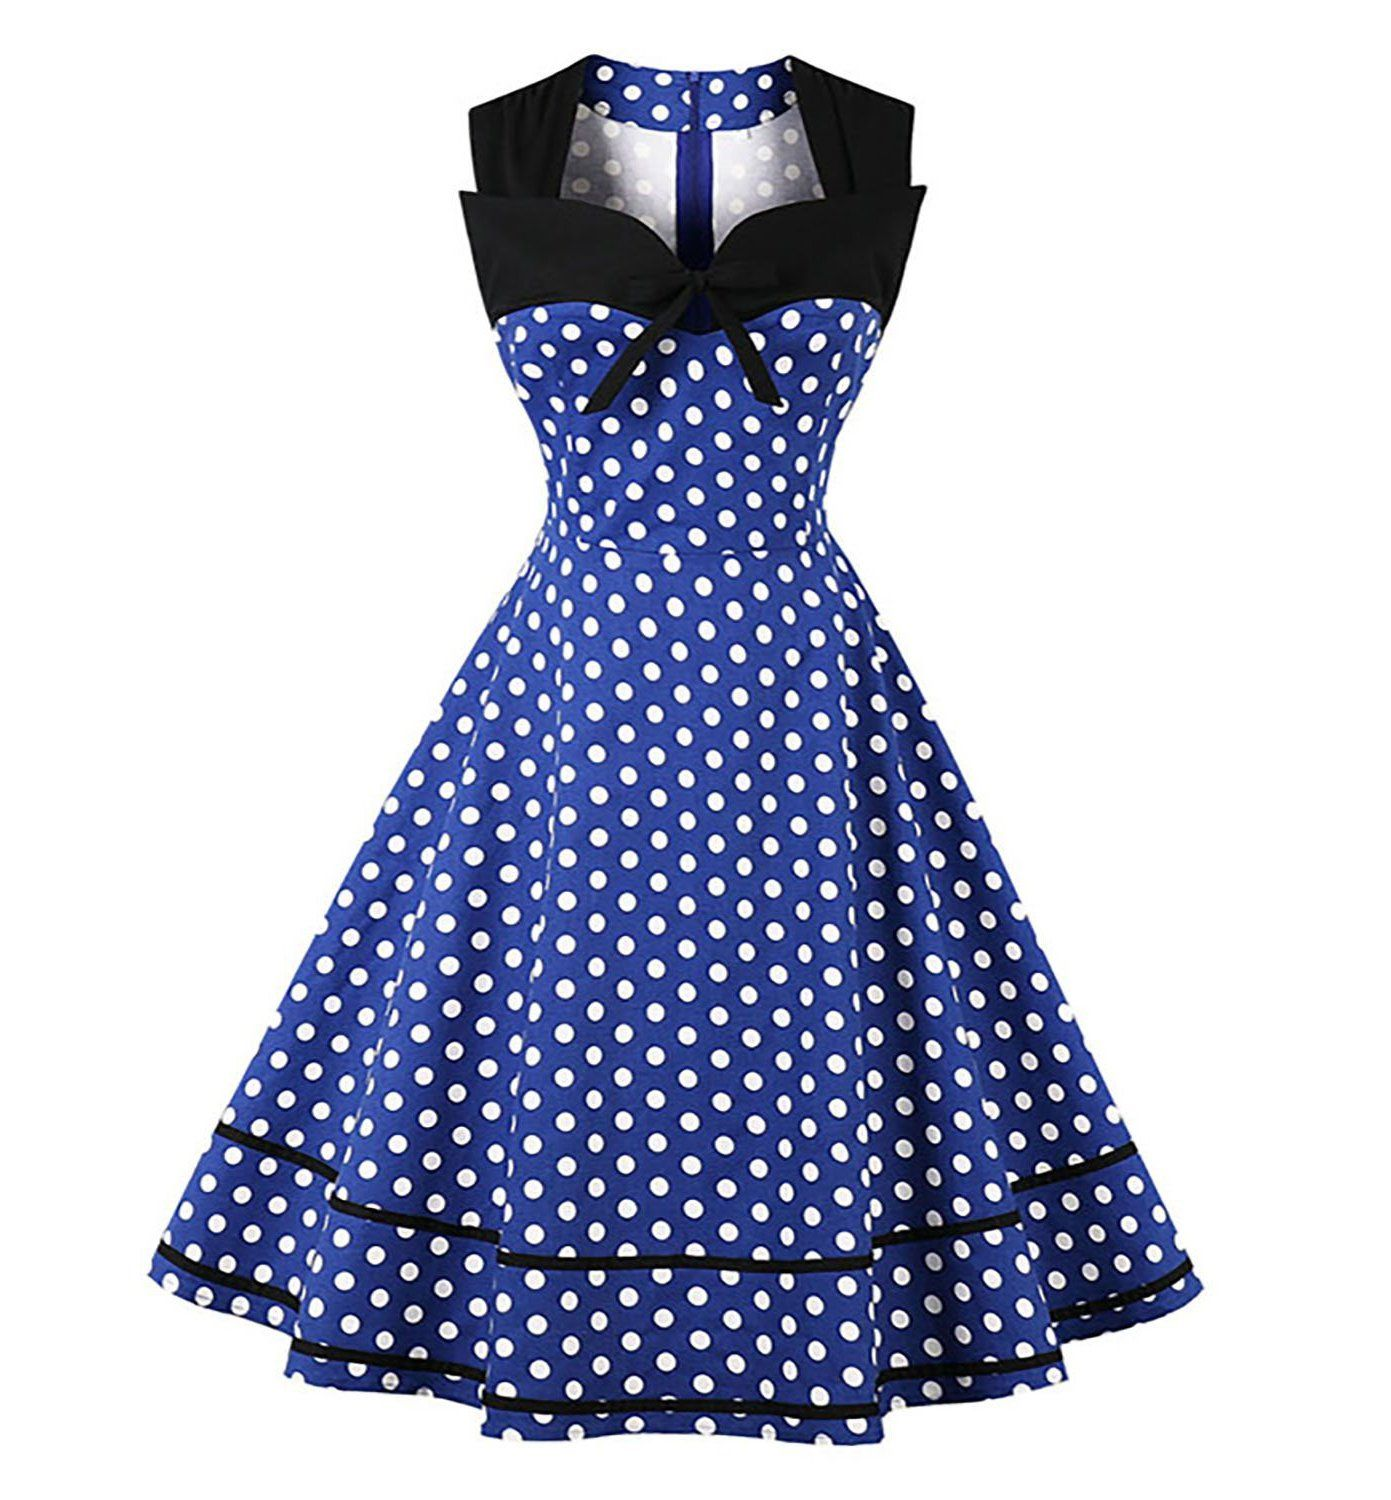 Polka Dot Retro Vintage Style Cocktail Party Swing Dress